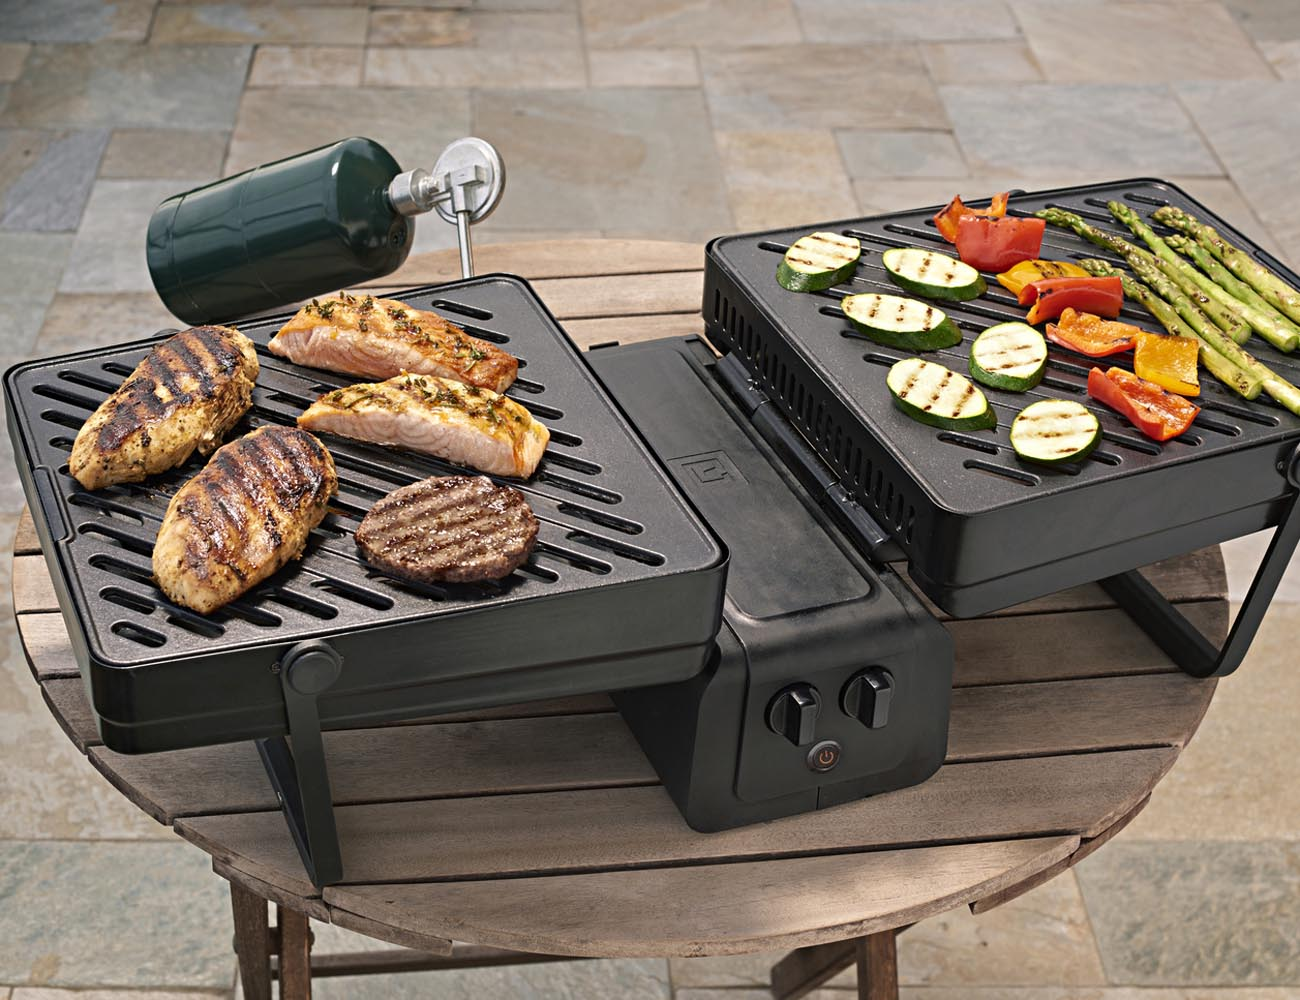 The Elevate Grill